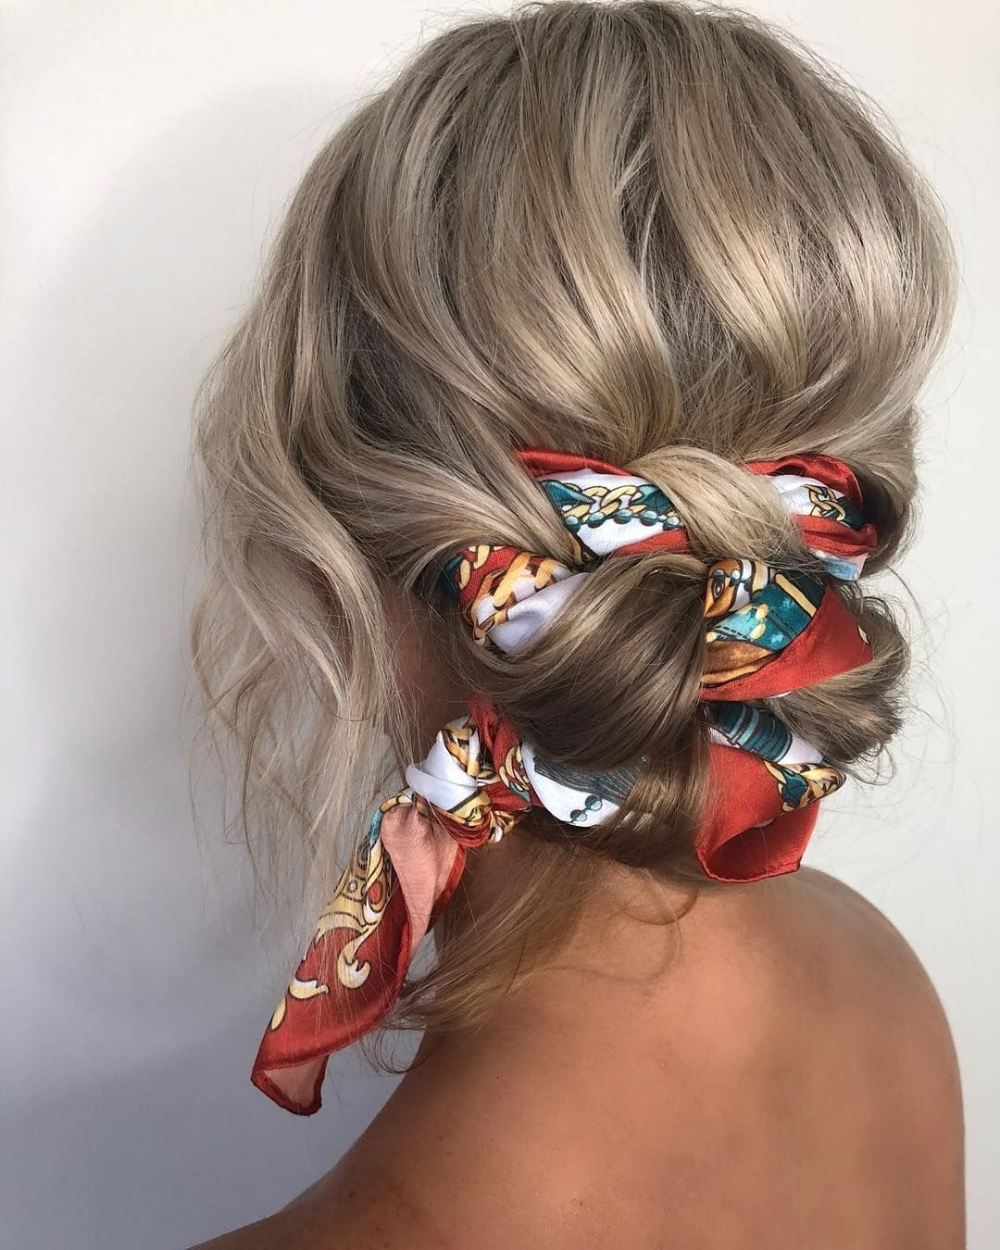 31 Headscarf Hairstyles Make You The Center On Holiday Koees Blog In 2020 Hair Styles Headband Hairstyles Scarf Hairstyles